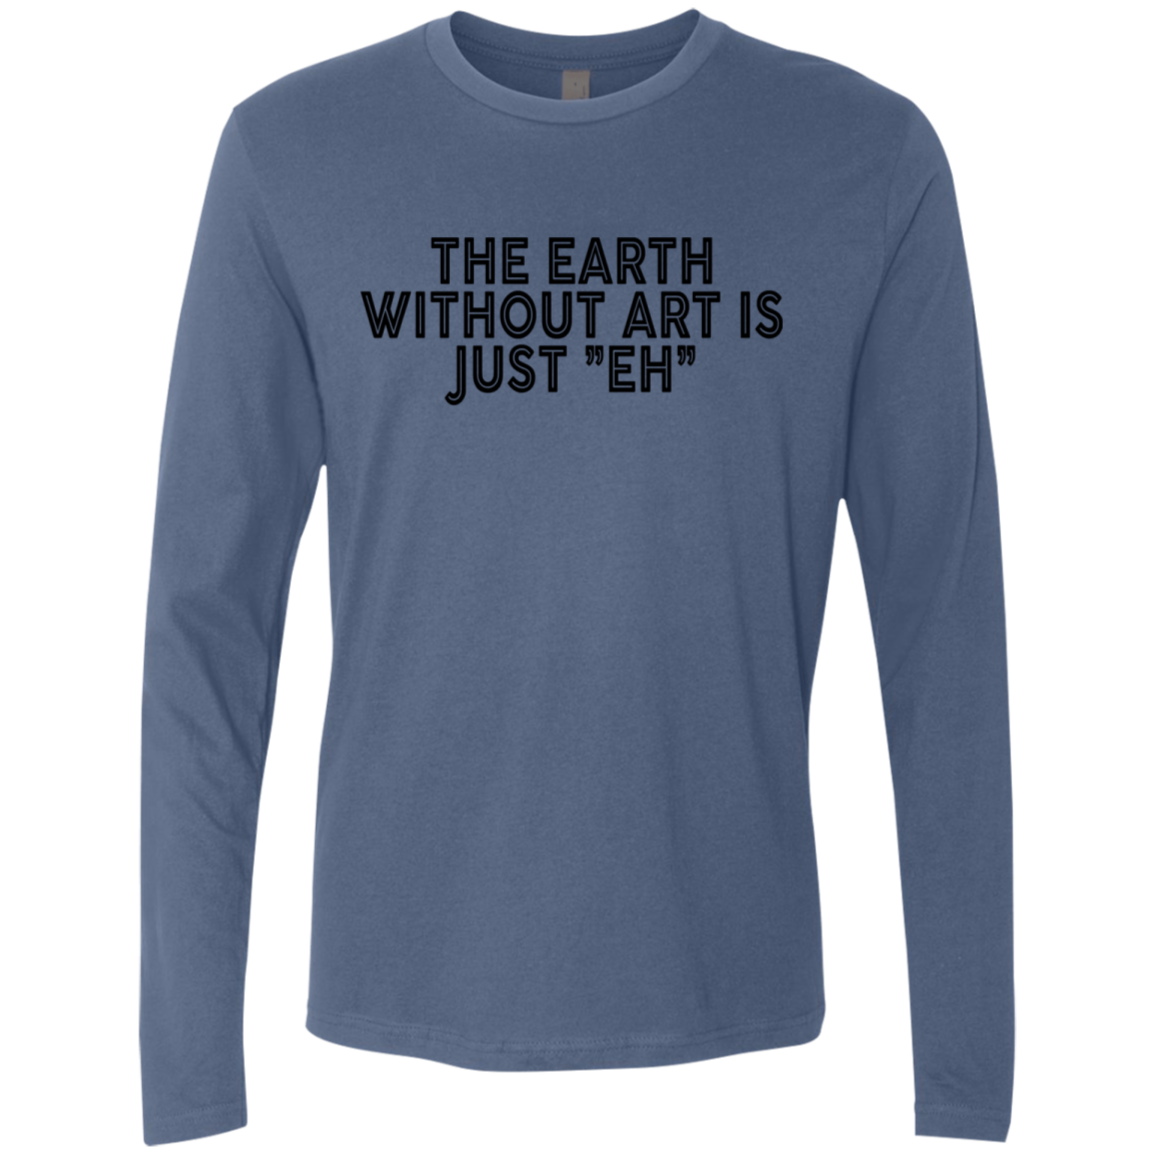 The Earth Without Art Is Just Eh Men's Long Sleeve Tee